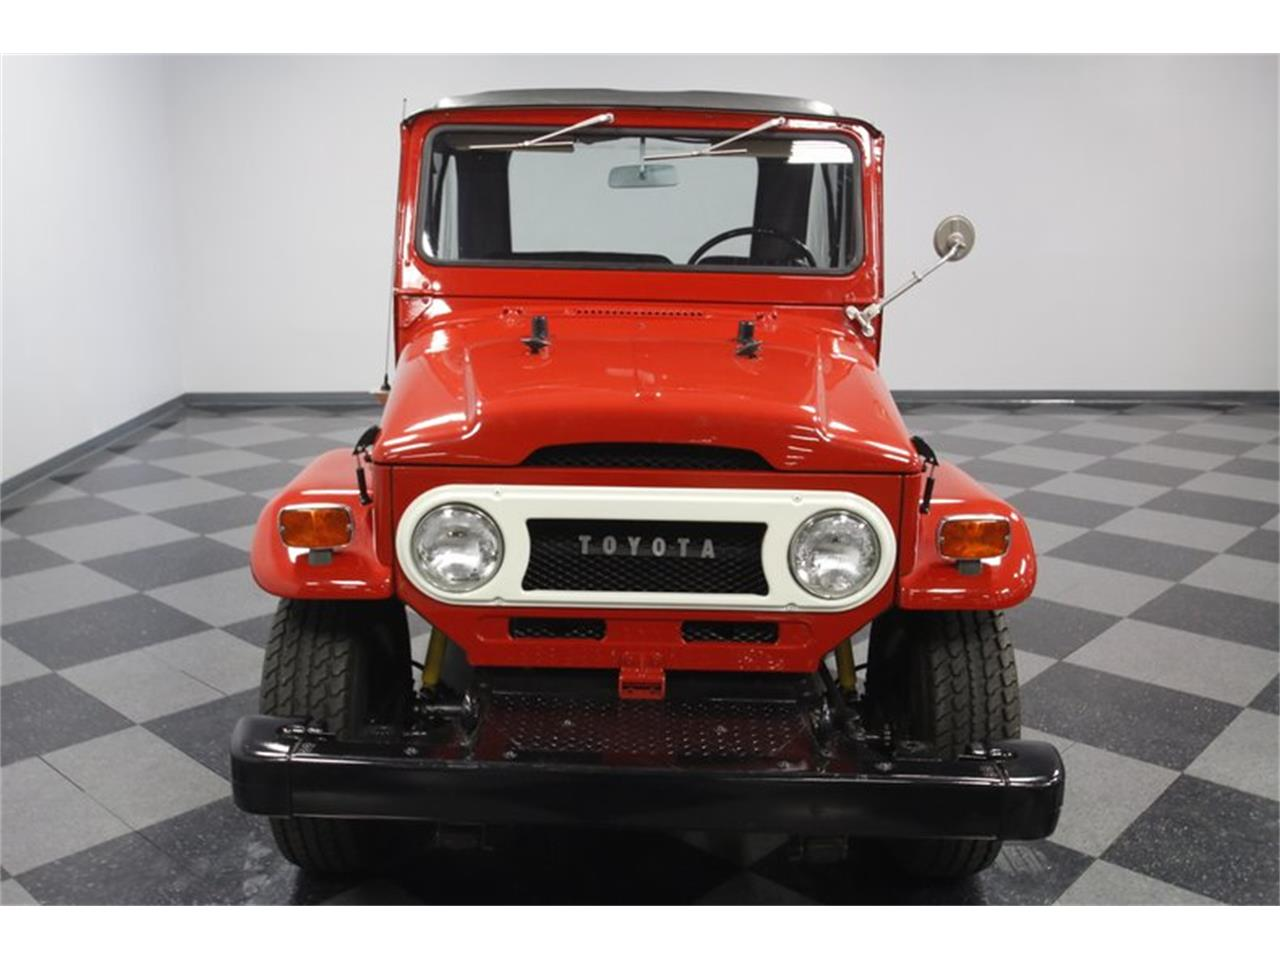 Large Picture of '72 Land Cruiser FJ located in North Carolina - $26,995.00 Offered by Streetside Classics - Charlotte - N3MA